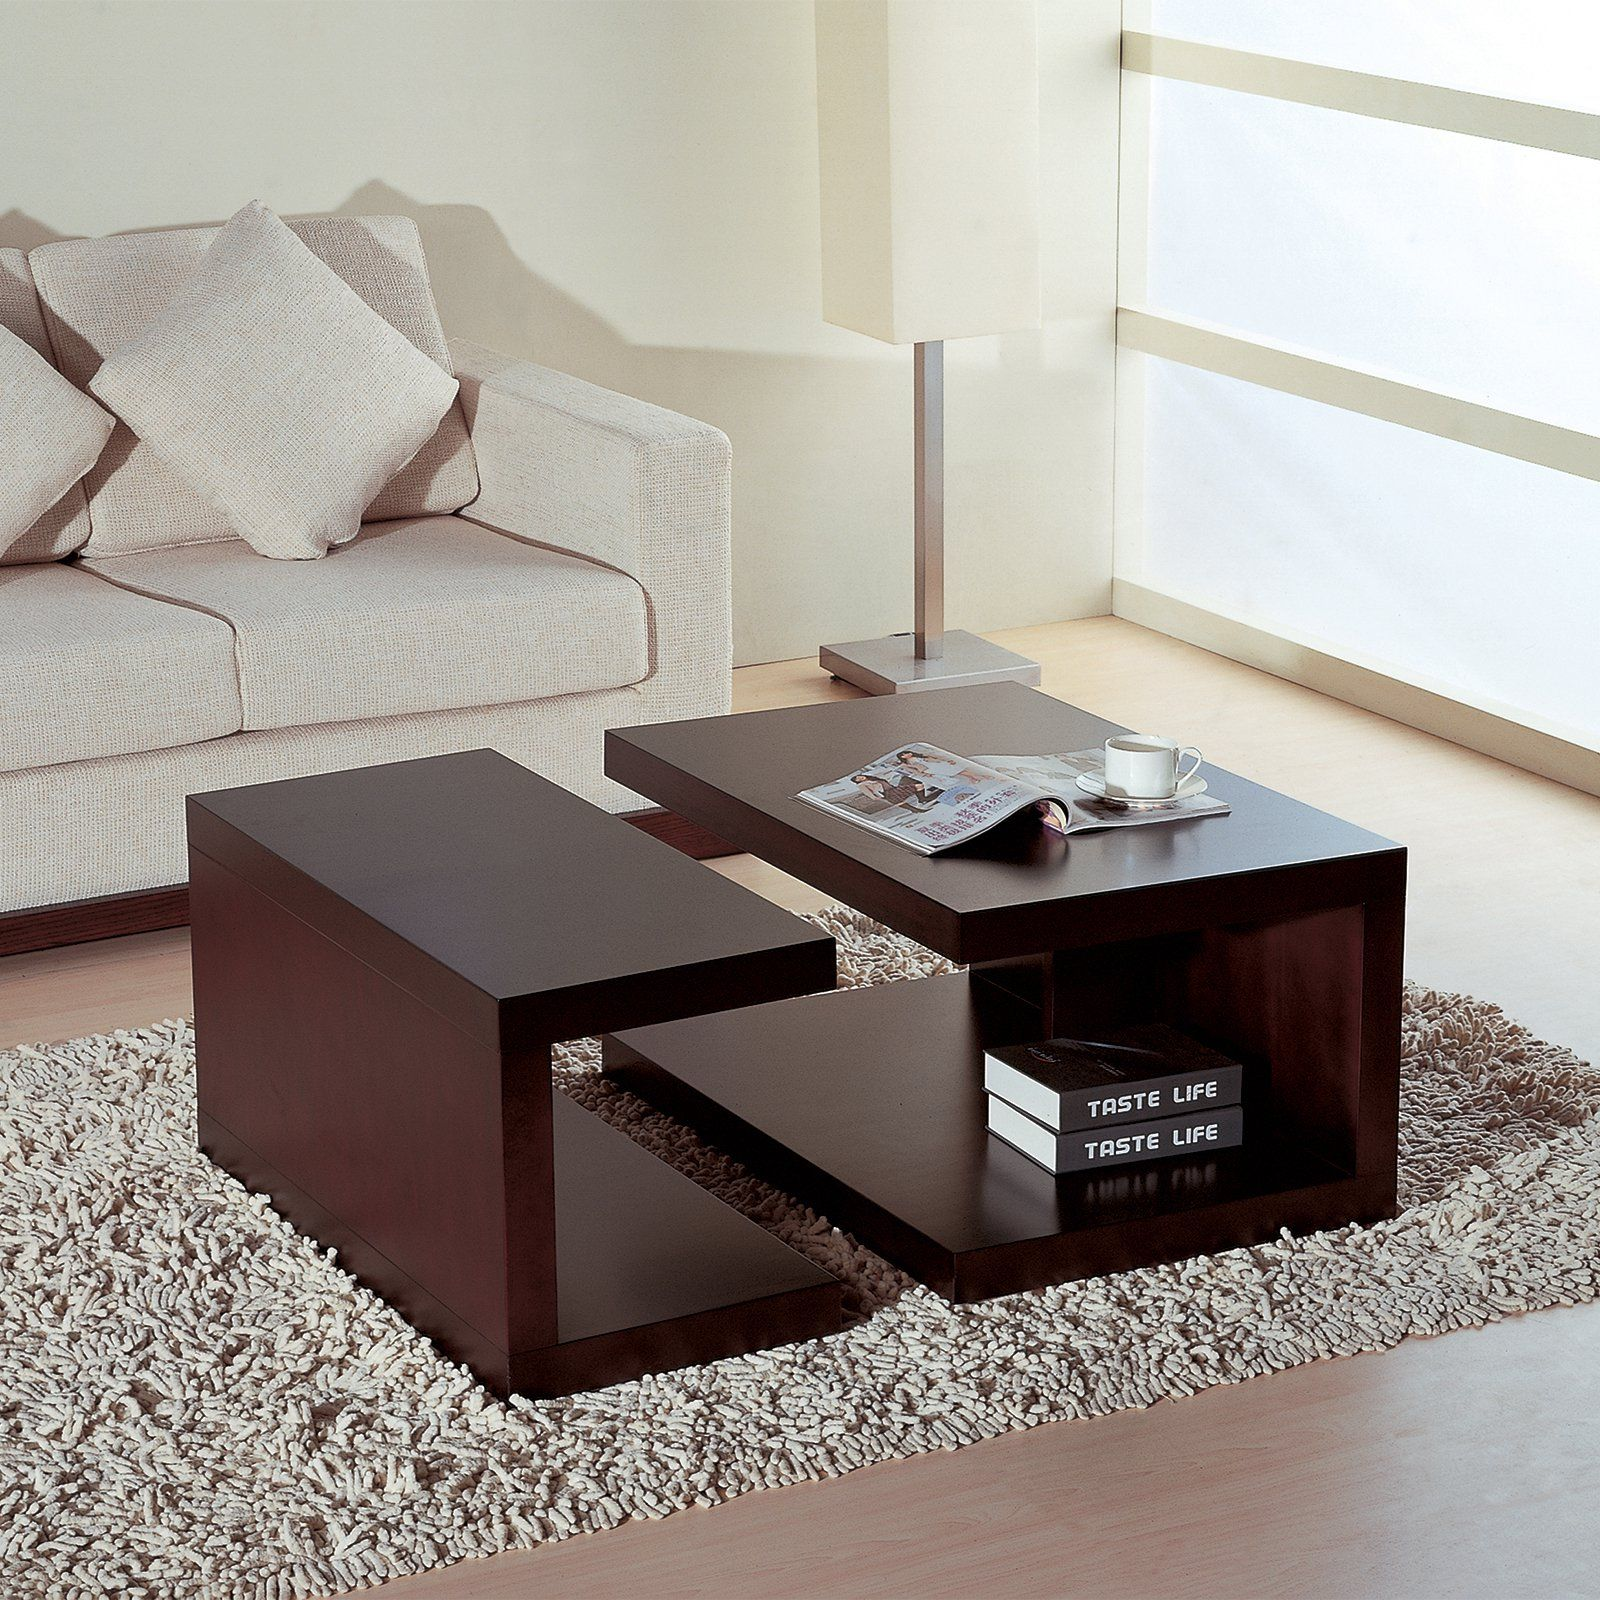 Jengo 2 piece coffee table espresso coffee tables at hayneedle jengo 2 piece coffee table espresso coffee tables at hayneedle geotapseo Choice Image